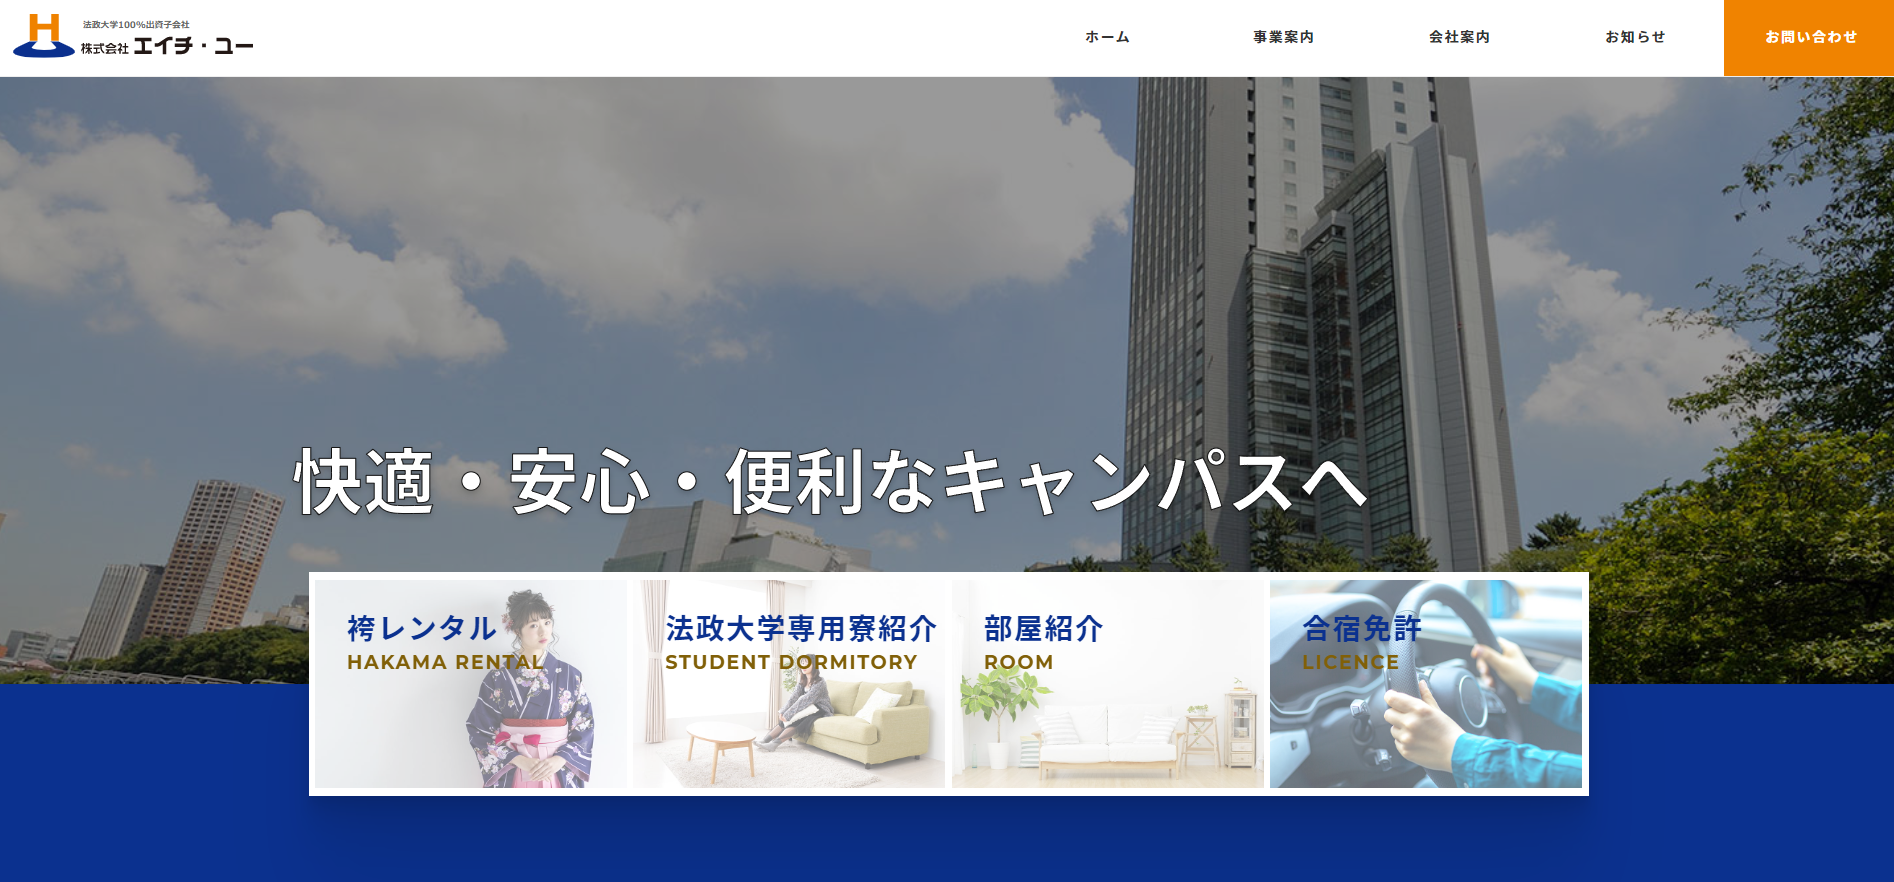 20200727homepage_of_HU.png